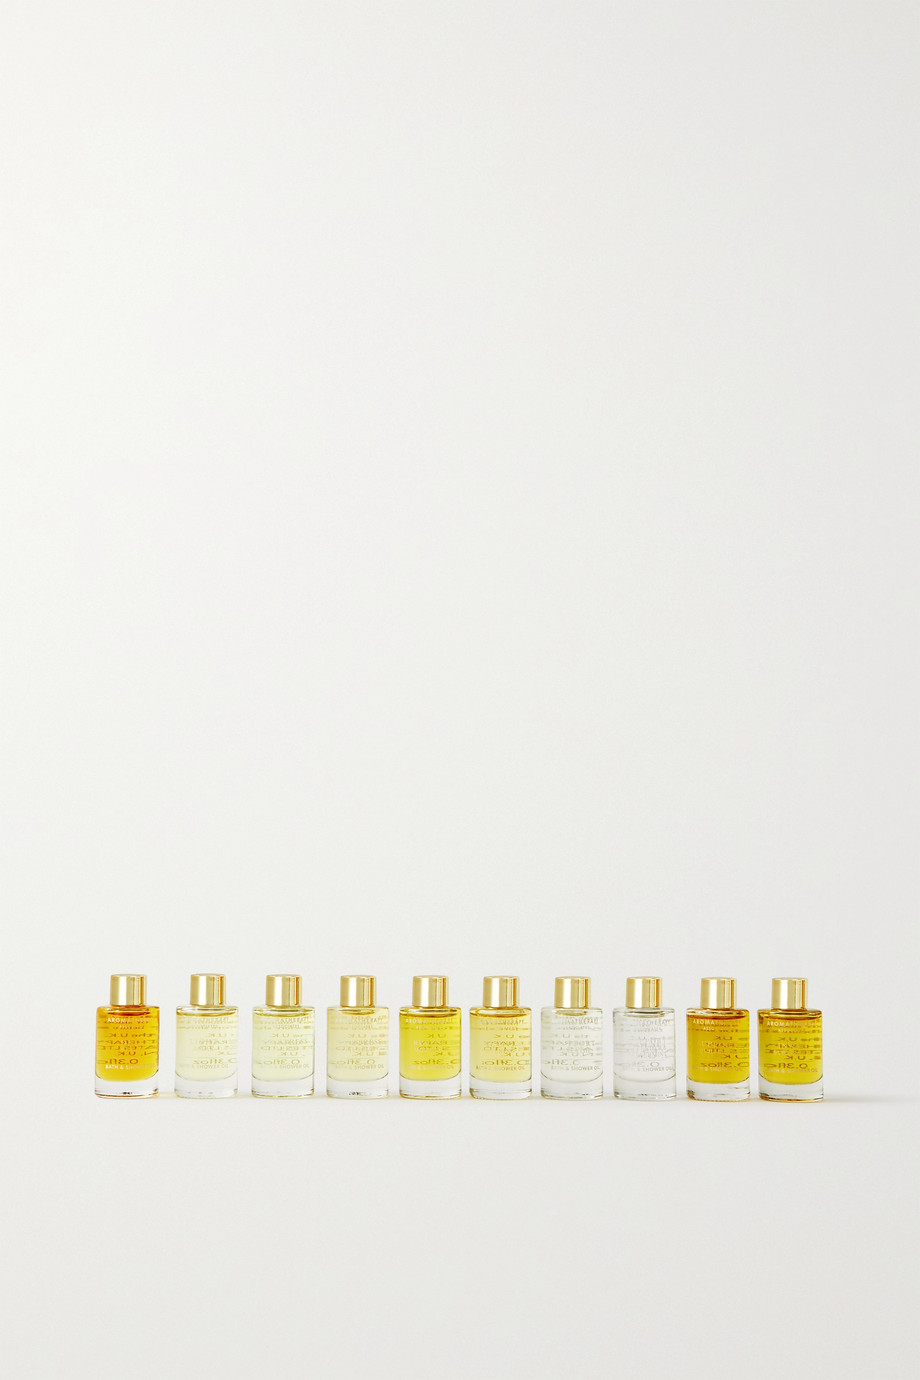 Aromatherapy Associates Ultimate Wellbeing Bath & Shower Oil Collection, 10 x 9ml